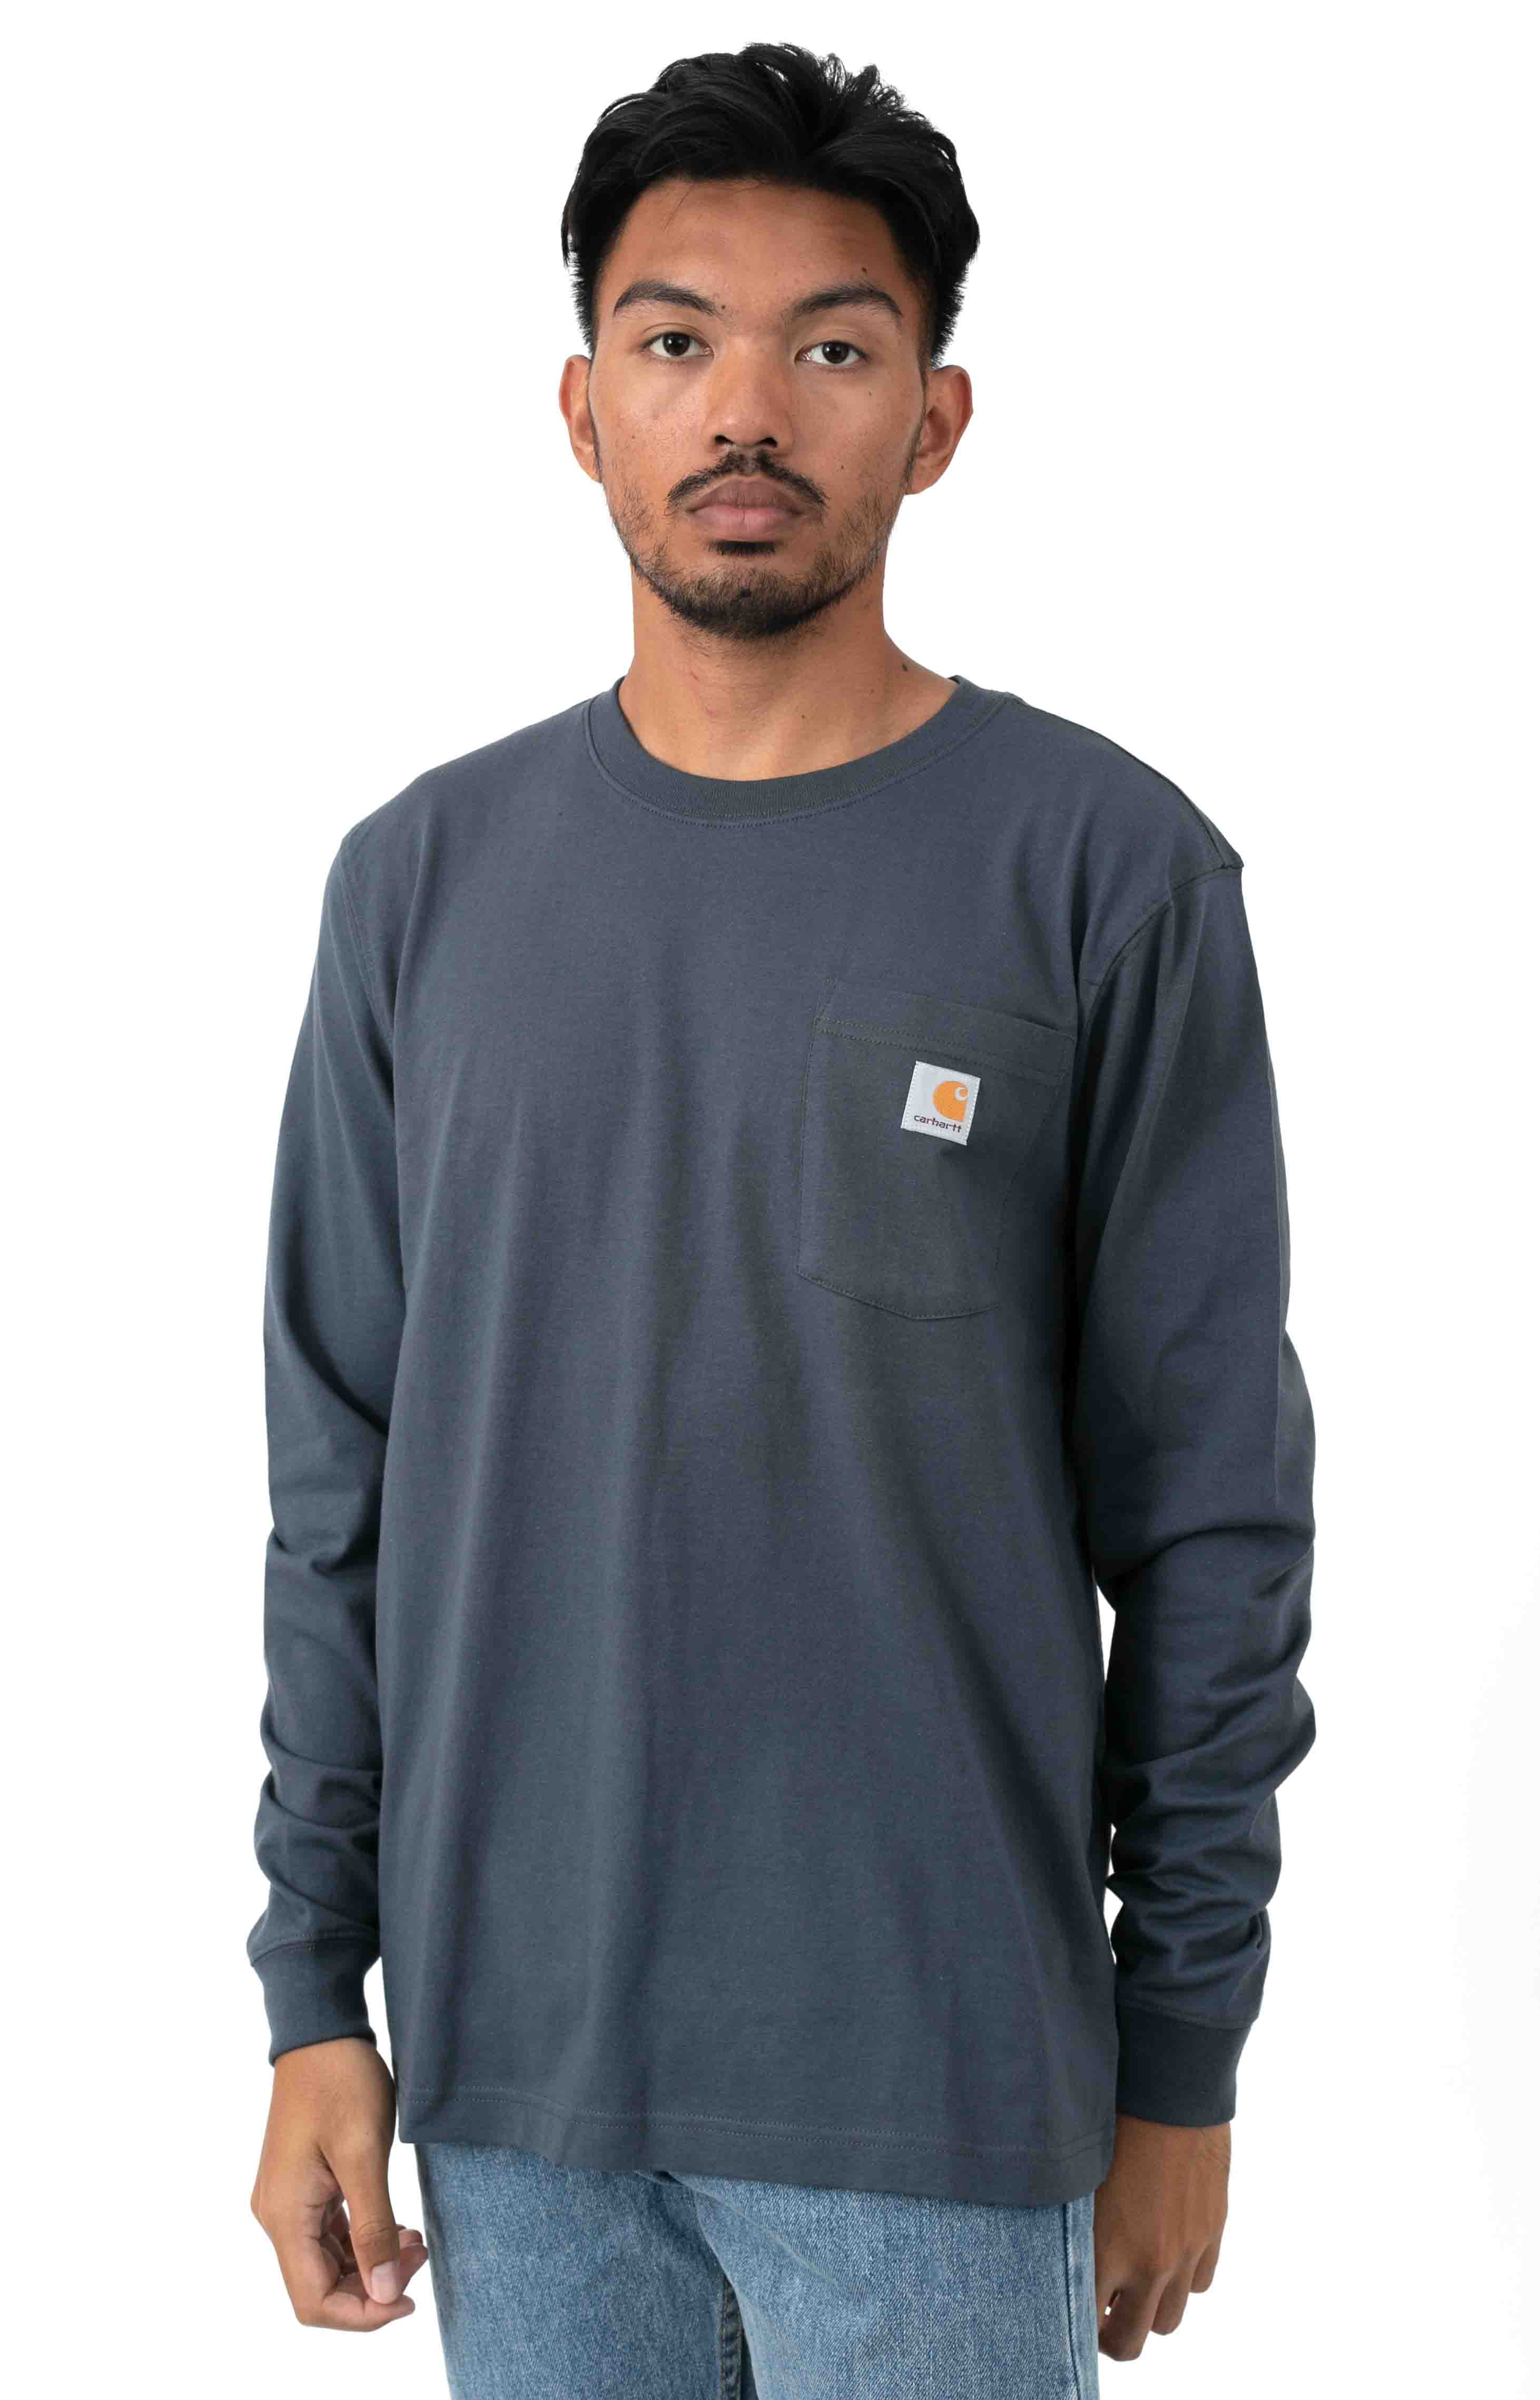 (104434) Relaxed Fit HW L/S Pocket Logo Graphic Shirt - Bluestone